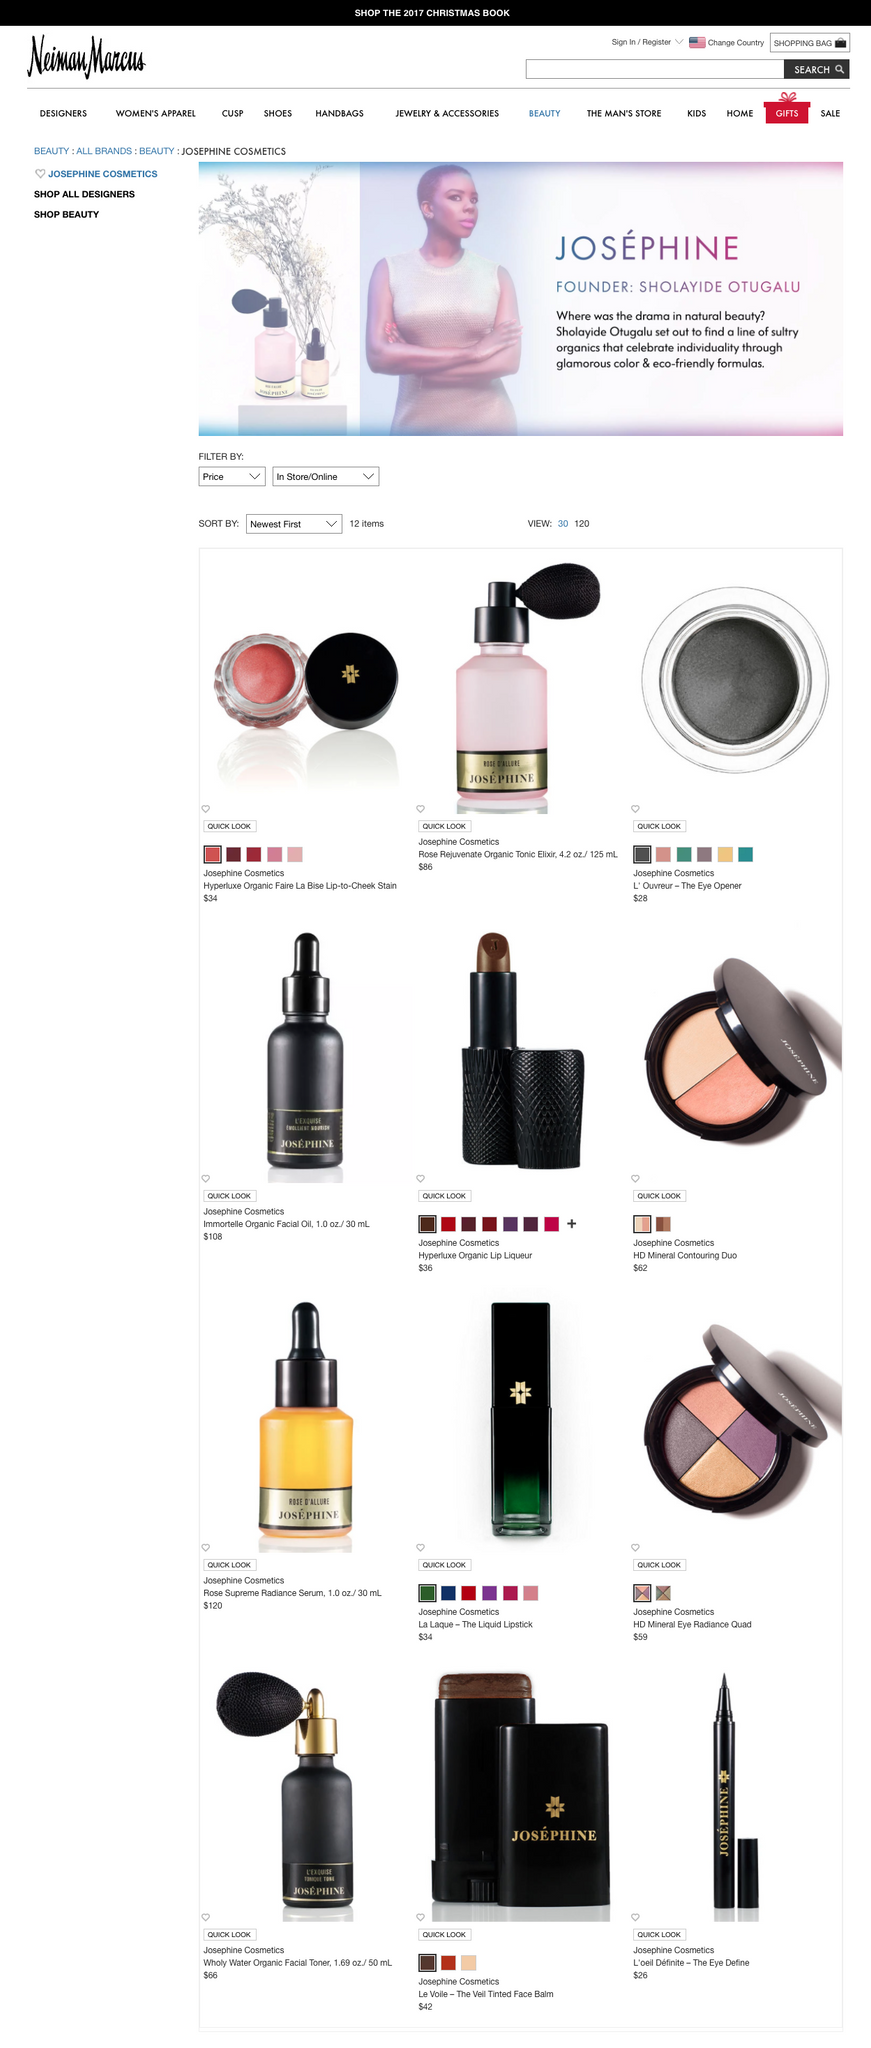 Shop Josephine Cosmetics at Neiman Marcus